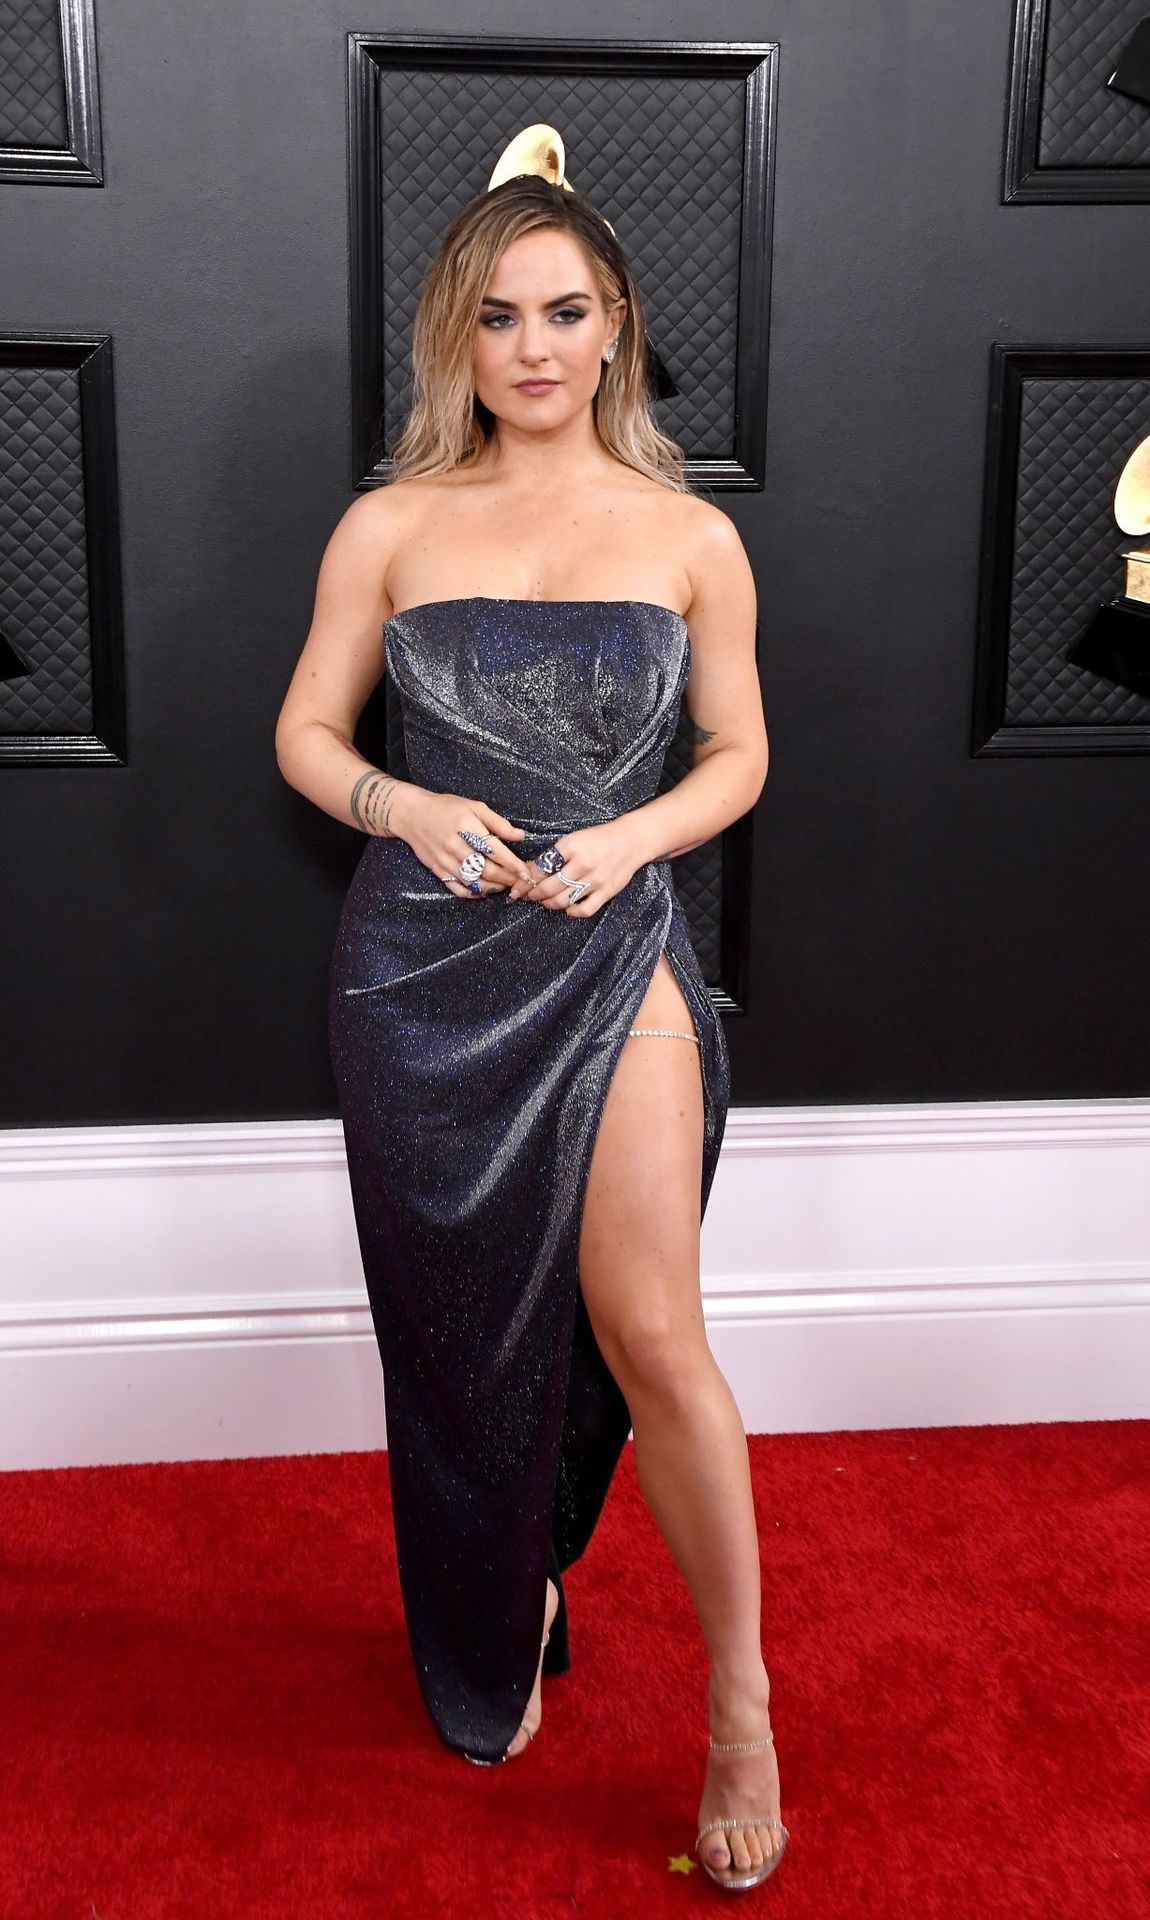 Jojo Shows Her Legs And Cleavage At The 62nd Annual Grammy Awards 0034